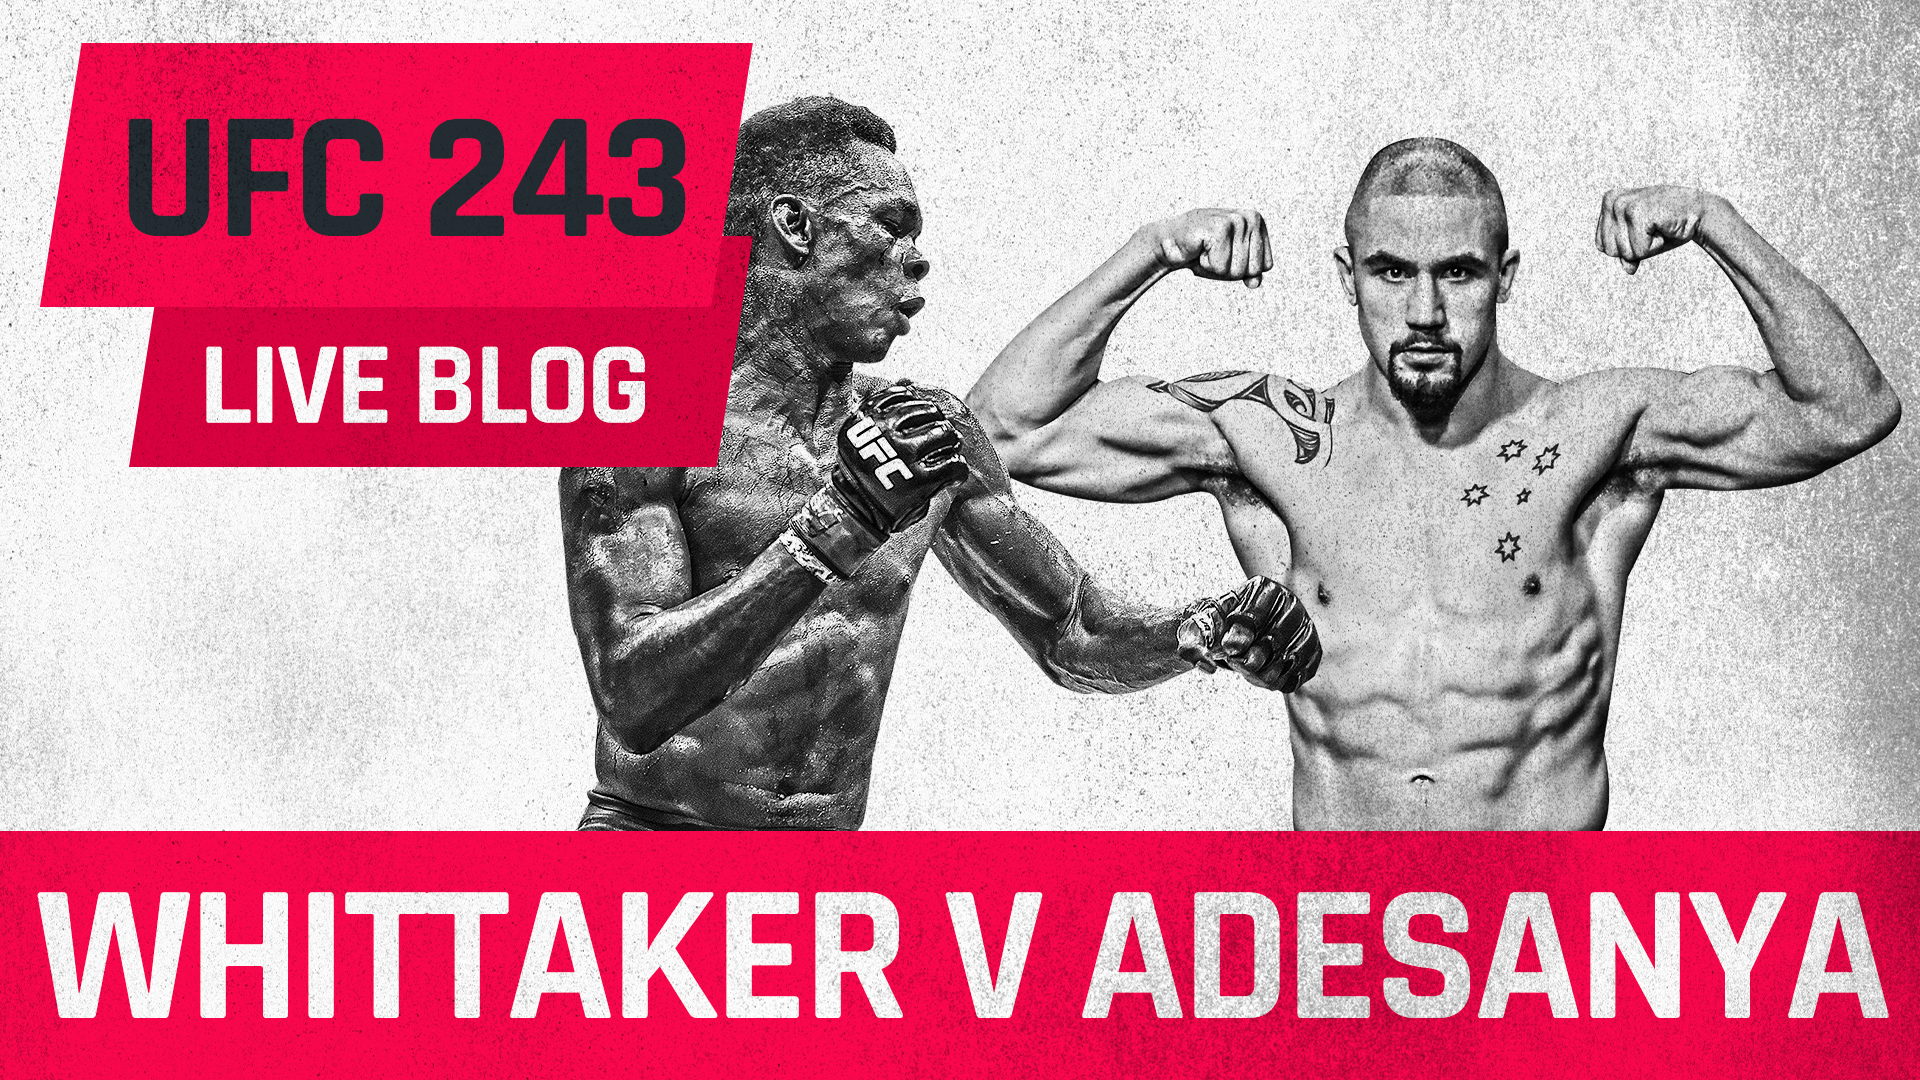 UFC 243 Live blog, results and highlights from Whittaker v